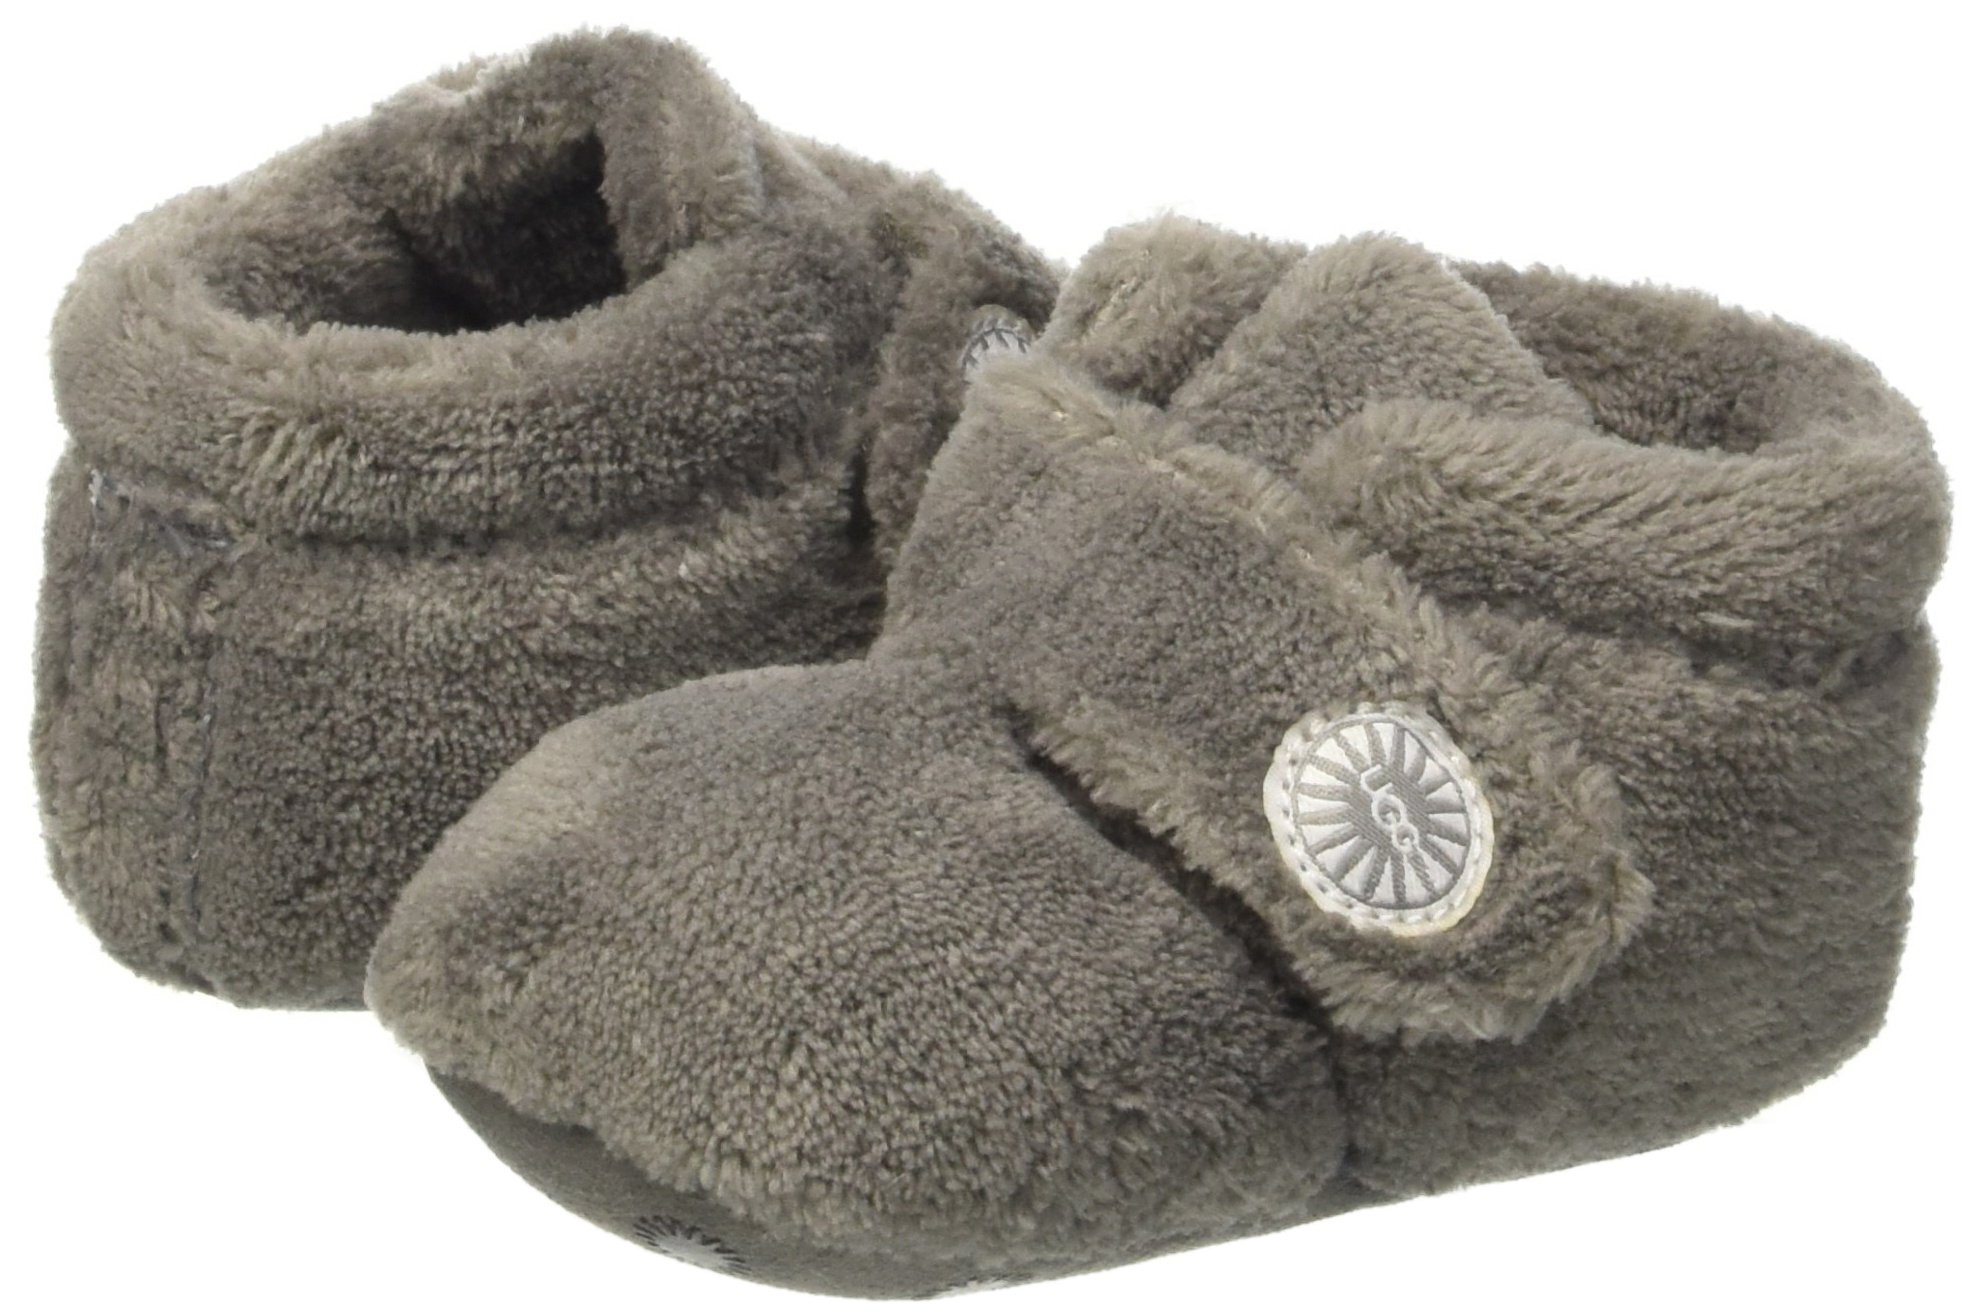 UGG Unisex Bixbee Bootie (Infant/Toddler), Charcoal, 2/3 (6-12 Months) M by UGG (Image #6)